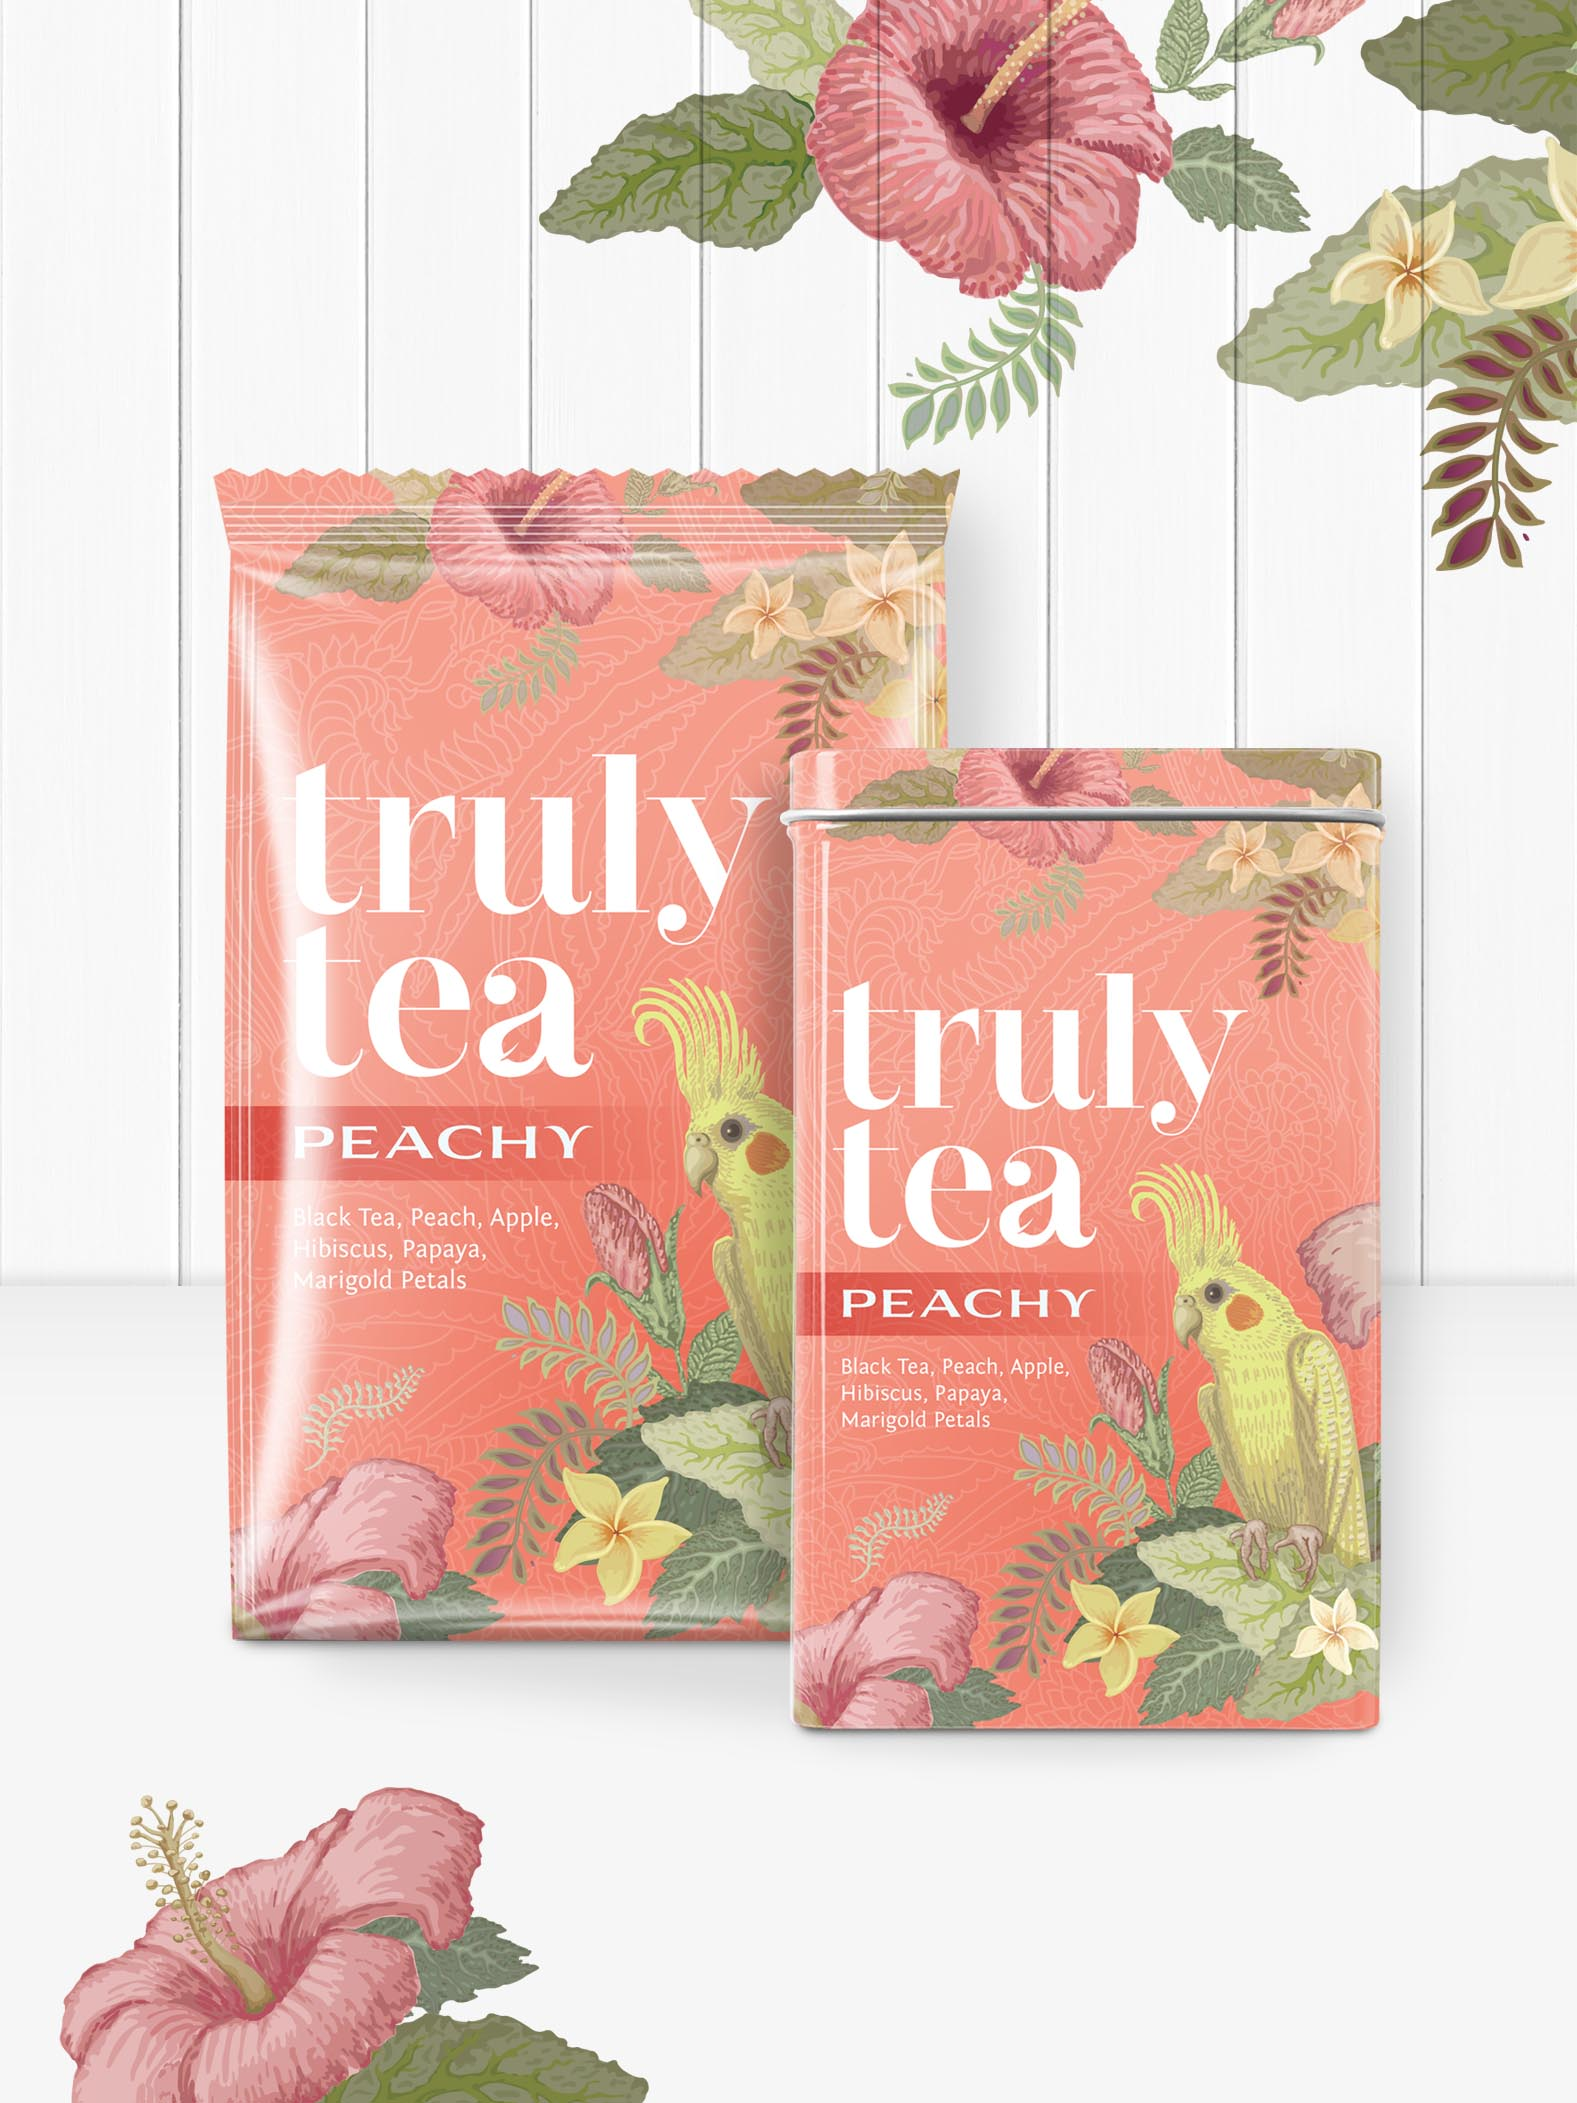 Truly Tea food packaging brand and logo design